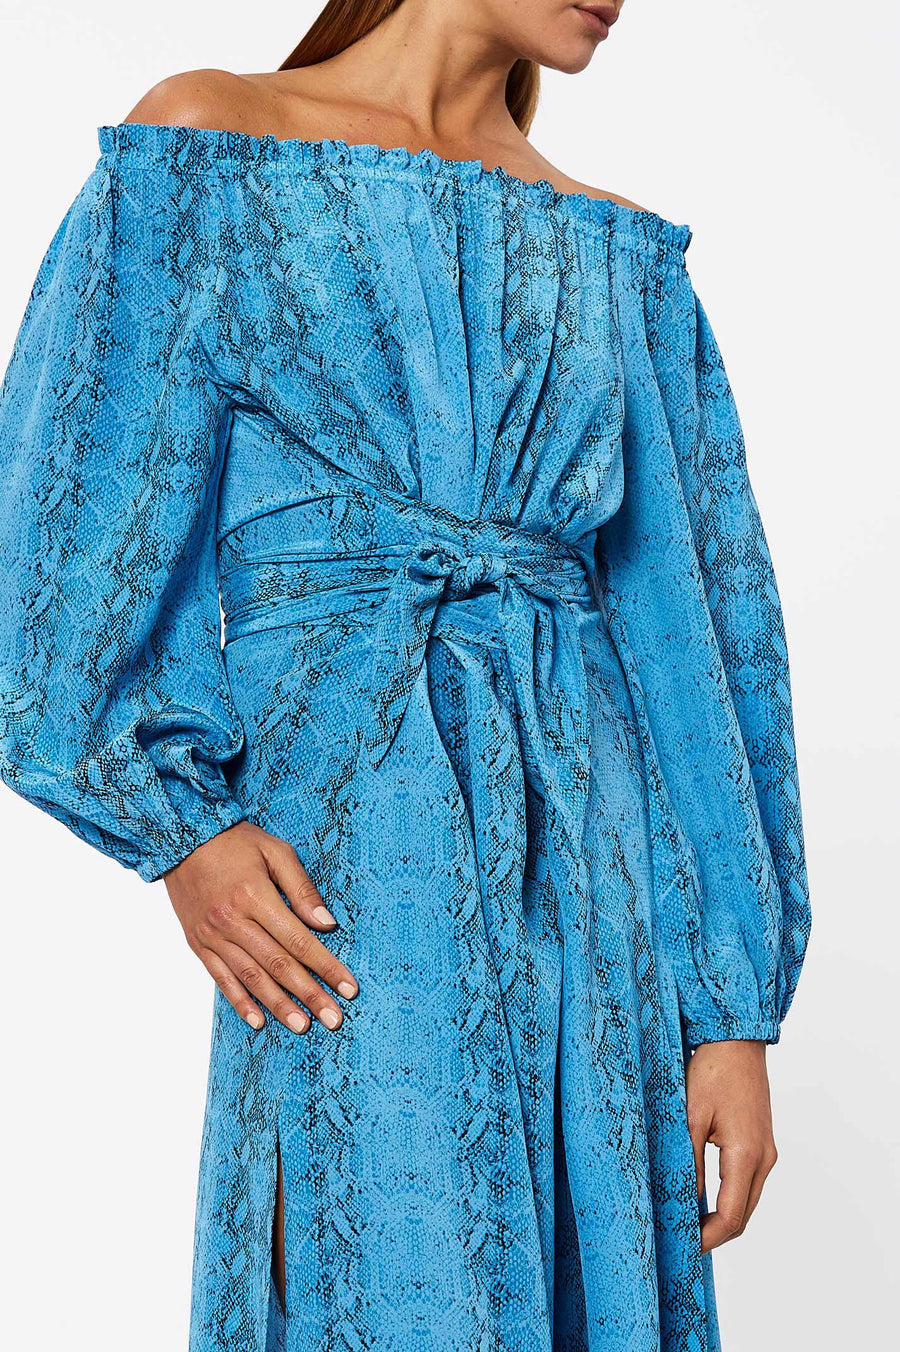 Silk Reptile Print Wrap Dress. Crafted in a breathable silk